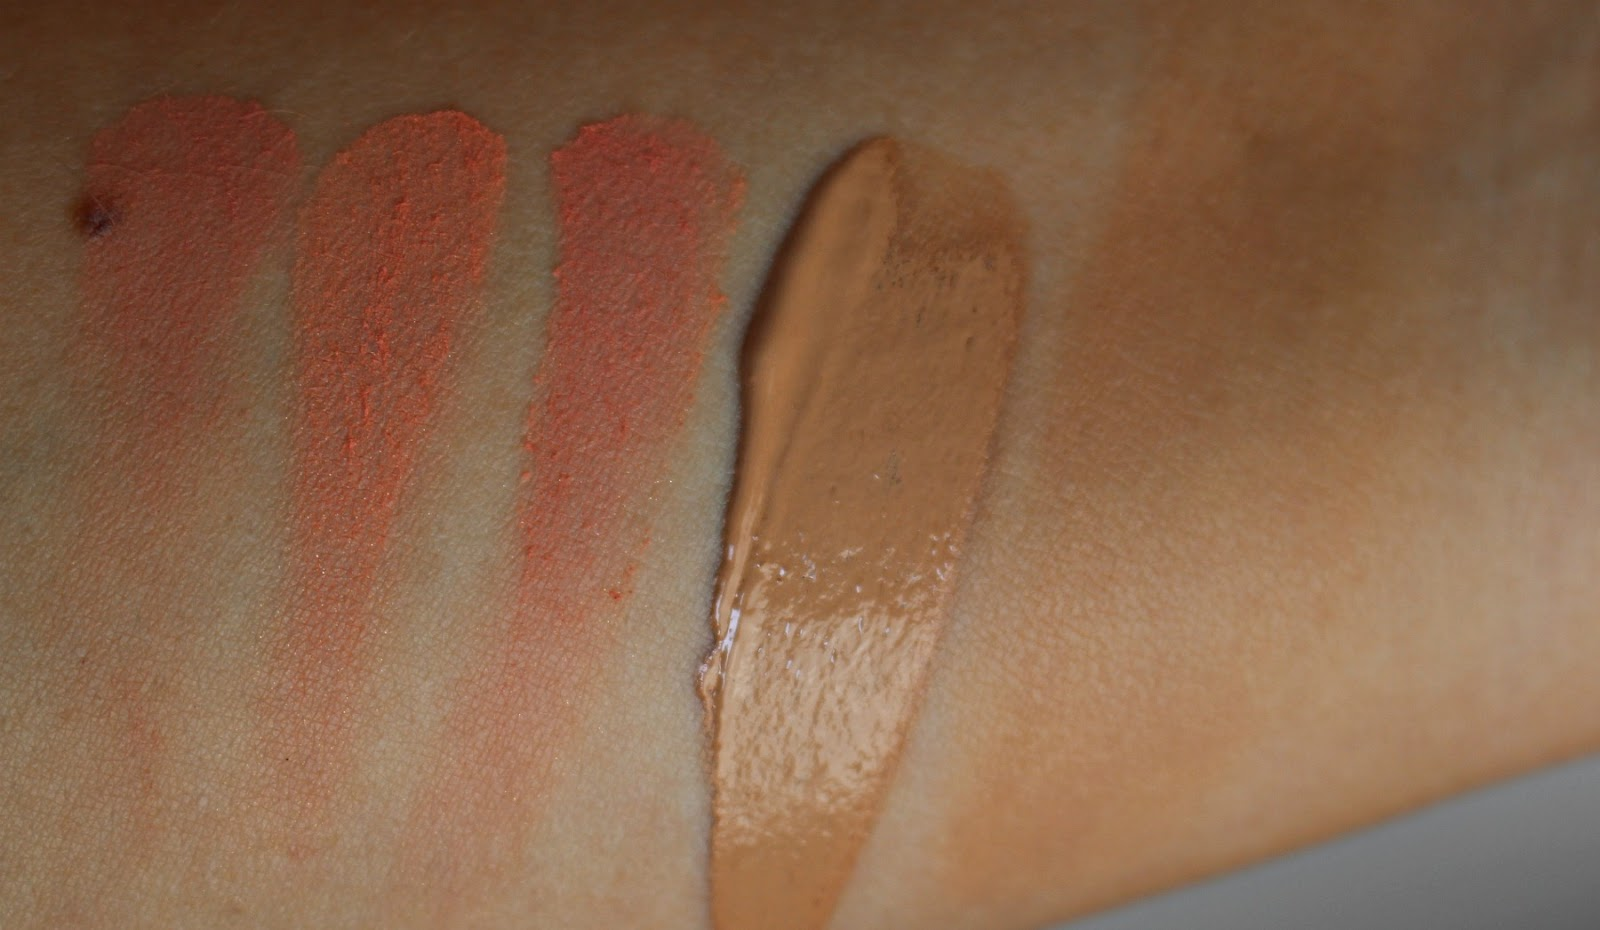 Maria Galland Lagune Paradis swatches